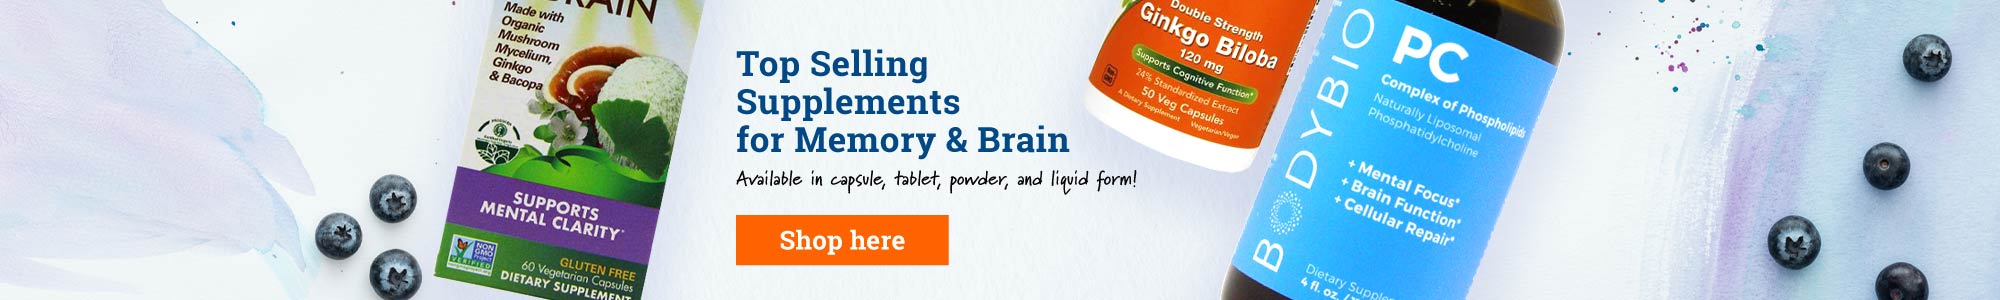 Top Selling Supplements for Memory & Brain - Available in capsule, tablet, powder, and liquid form! Shop here.